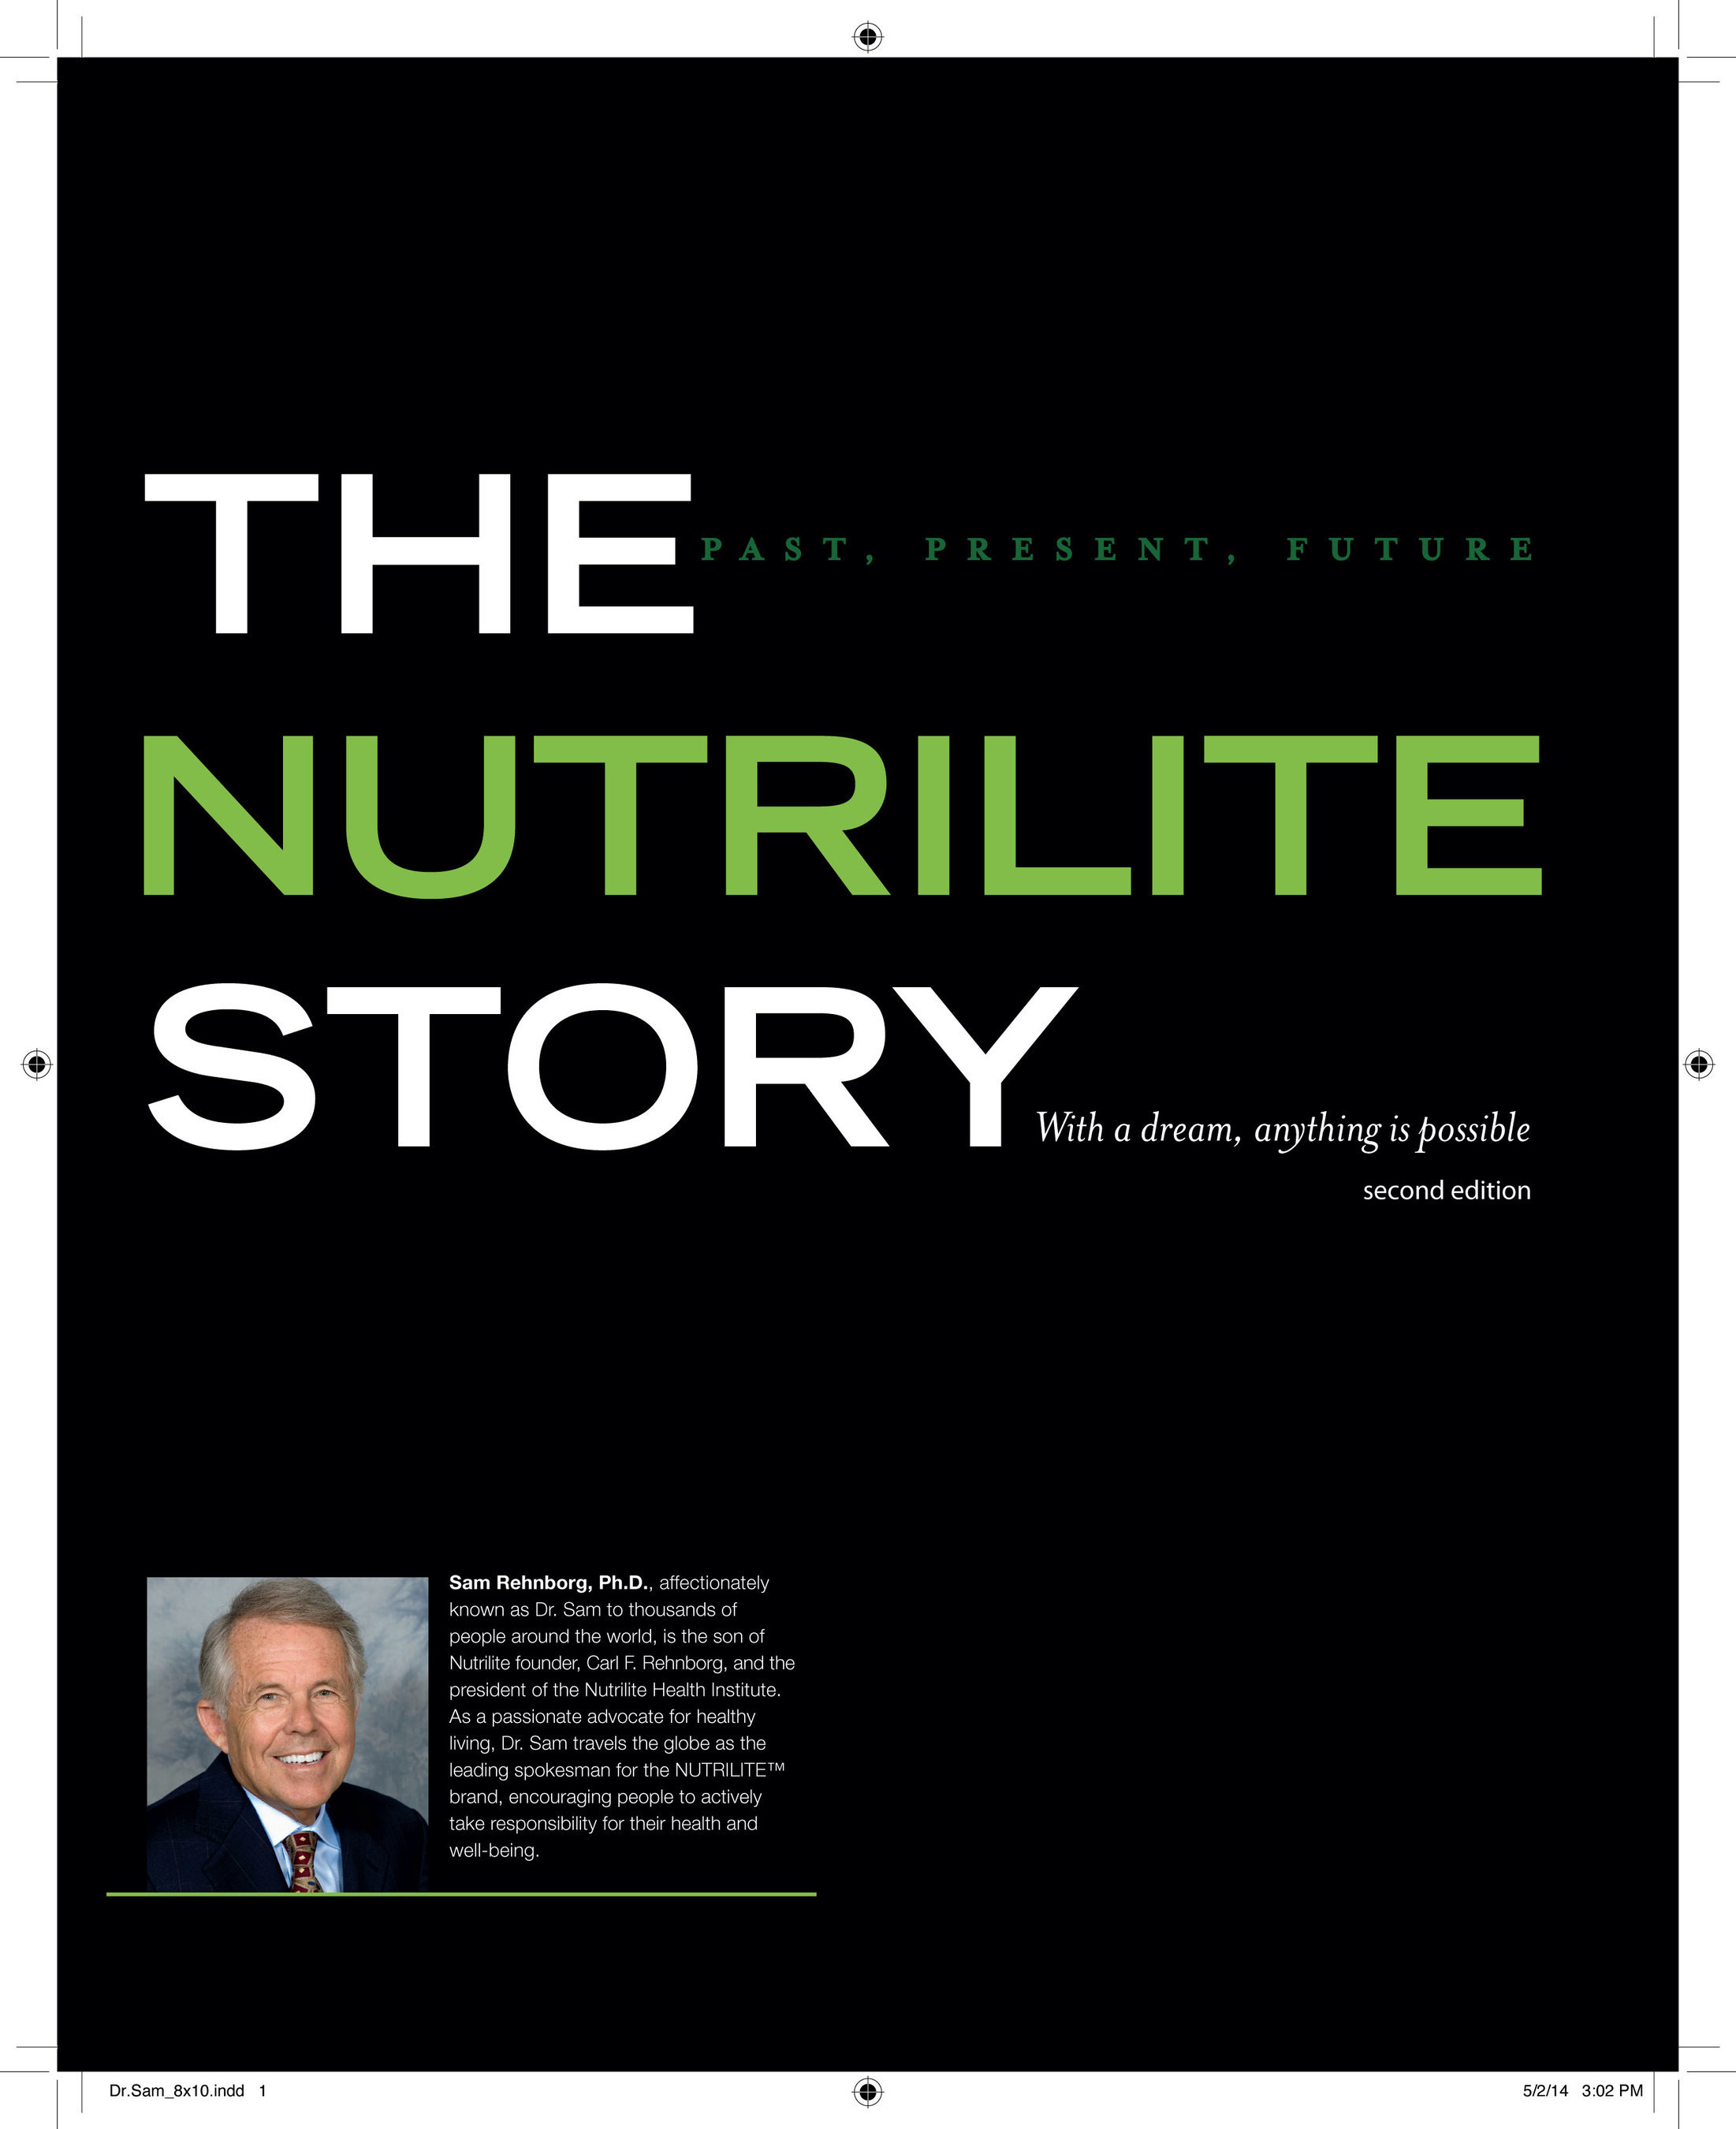 Amway Releases Second Edition of The Nutrilite Story